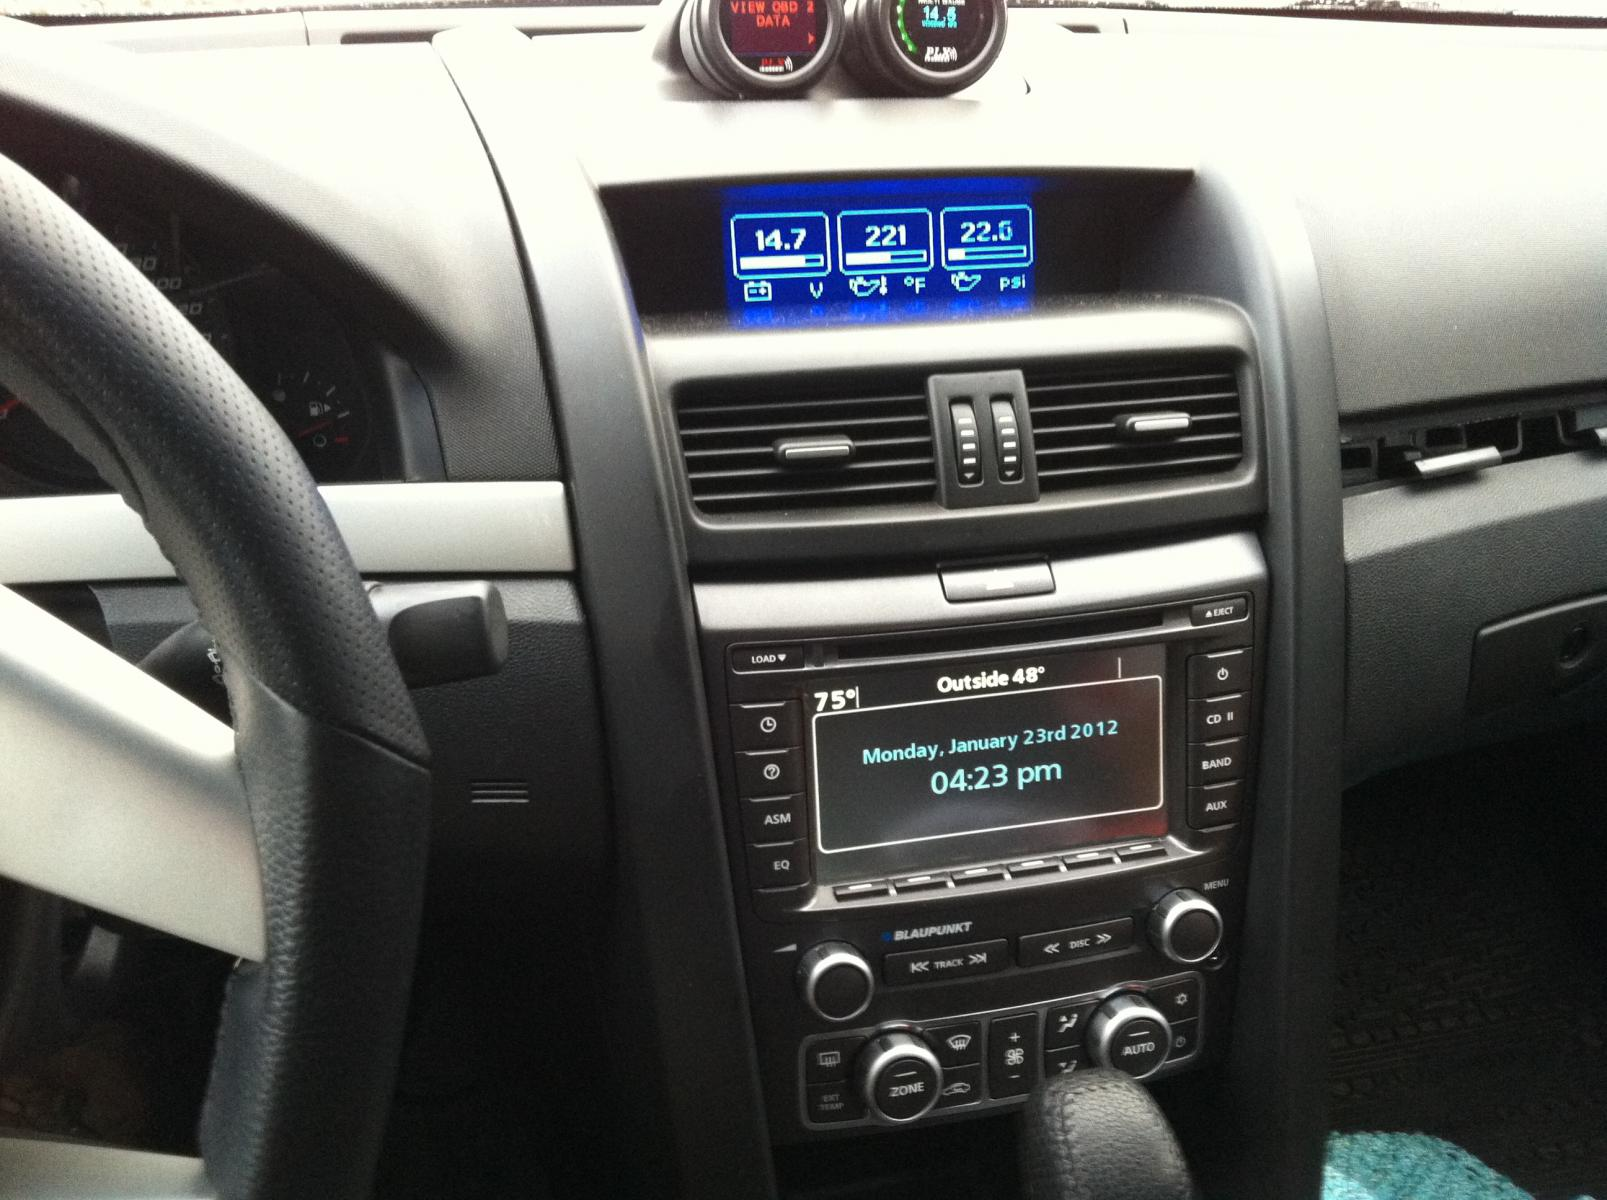 V6 Head Unit Swaps To Gt Possible Pontiac G8 Forum Wheel Sensor Wiring Diagrams We Share An Interest In Electronics And I Thank You For Taking The Time Further Educate Me As Explore Options That Are Available Owners